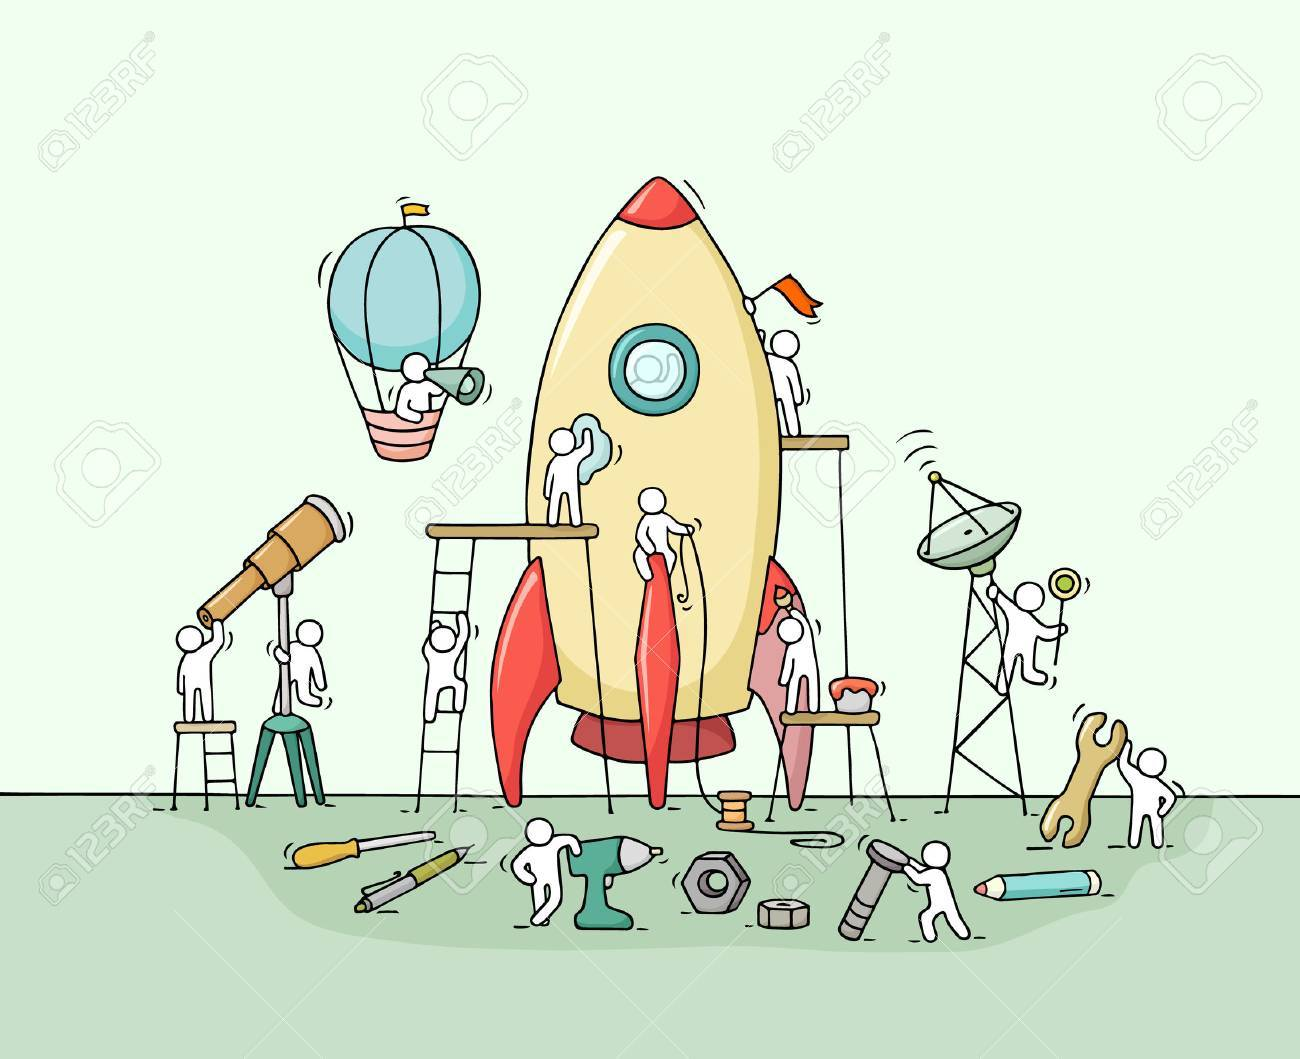 Sketch of working little people with big rocket. Doodle cute miniature scene of workers with startup concept. Hand drawn cartoon illustration for business design and infographic. - 72173296